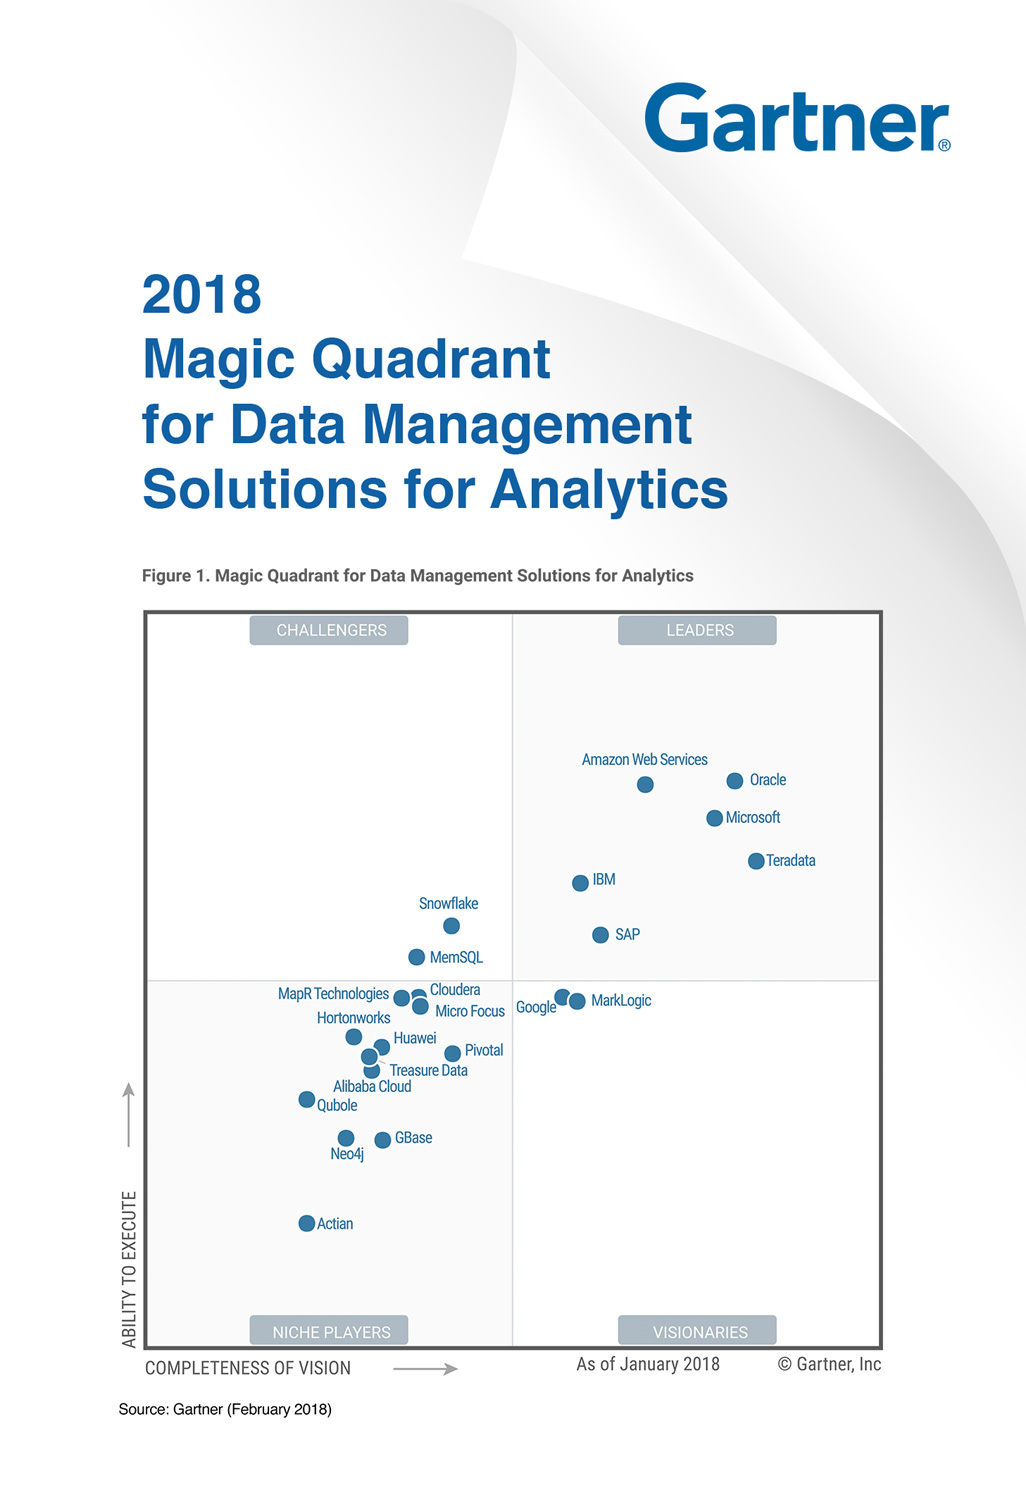 gartner magic quadrant treasure data